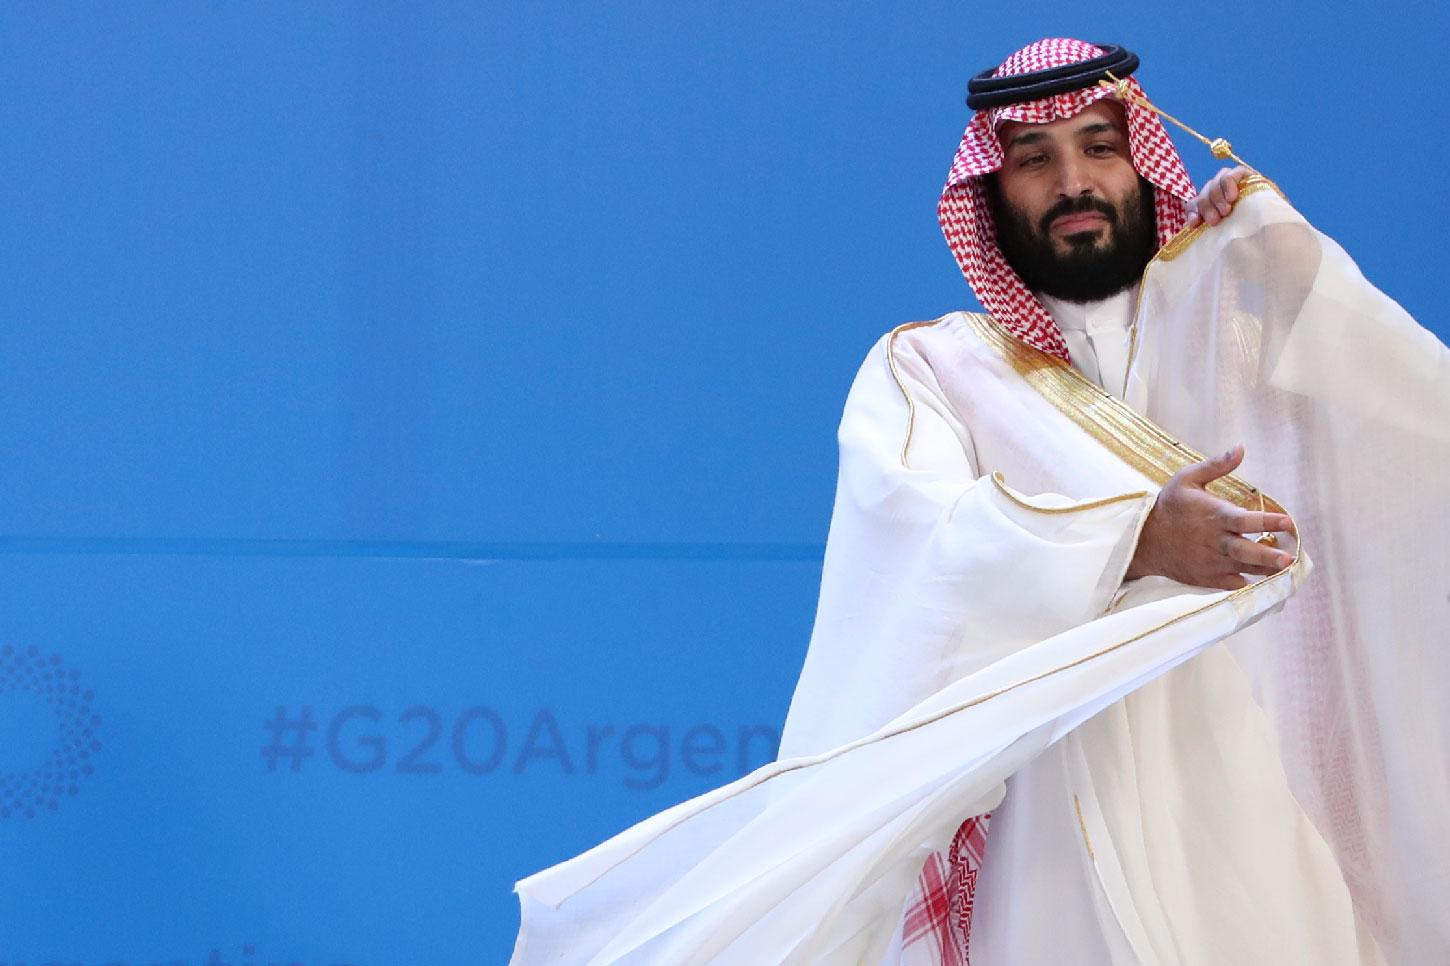 Saudi Arabia's Crown Prince Mohammed bin Salman adjusts his robe as leaders gather for the group at the G20 Leader's Summit at the Costa Salguero Center in Buenos Aires, Argentina, Friday, Nov. 30, 2018.